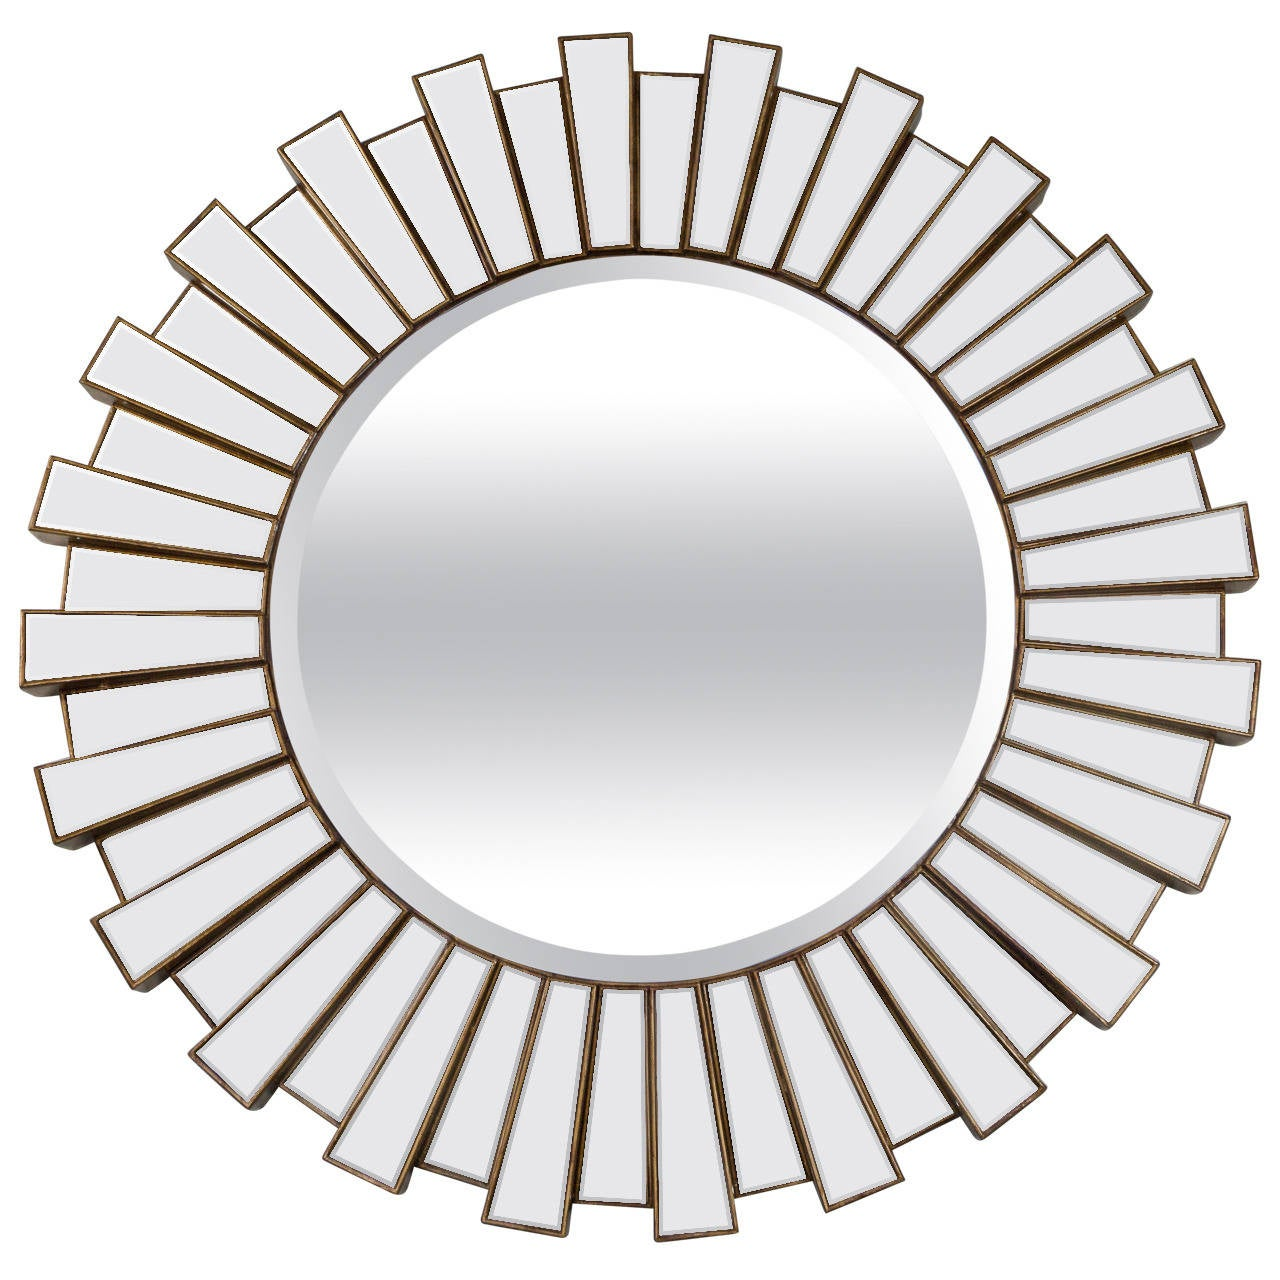 Large round sunburst bevel mirror at 1stdibs for Mirror o mirror